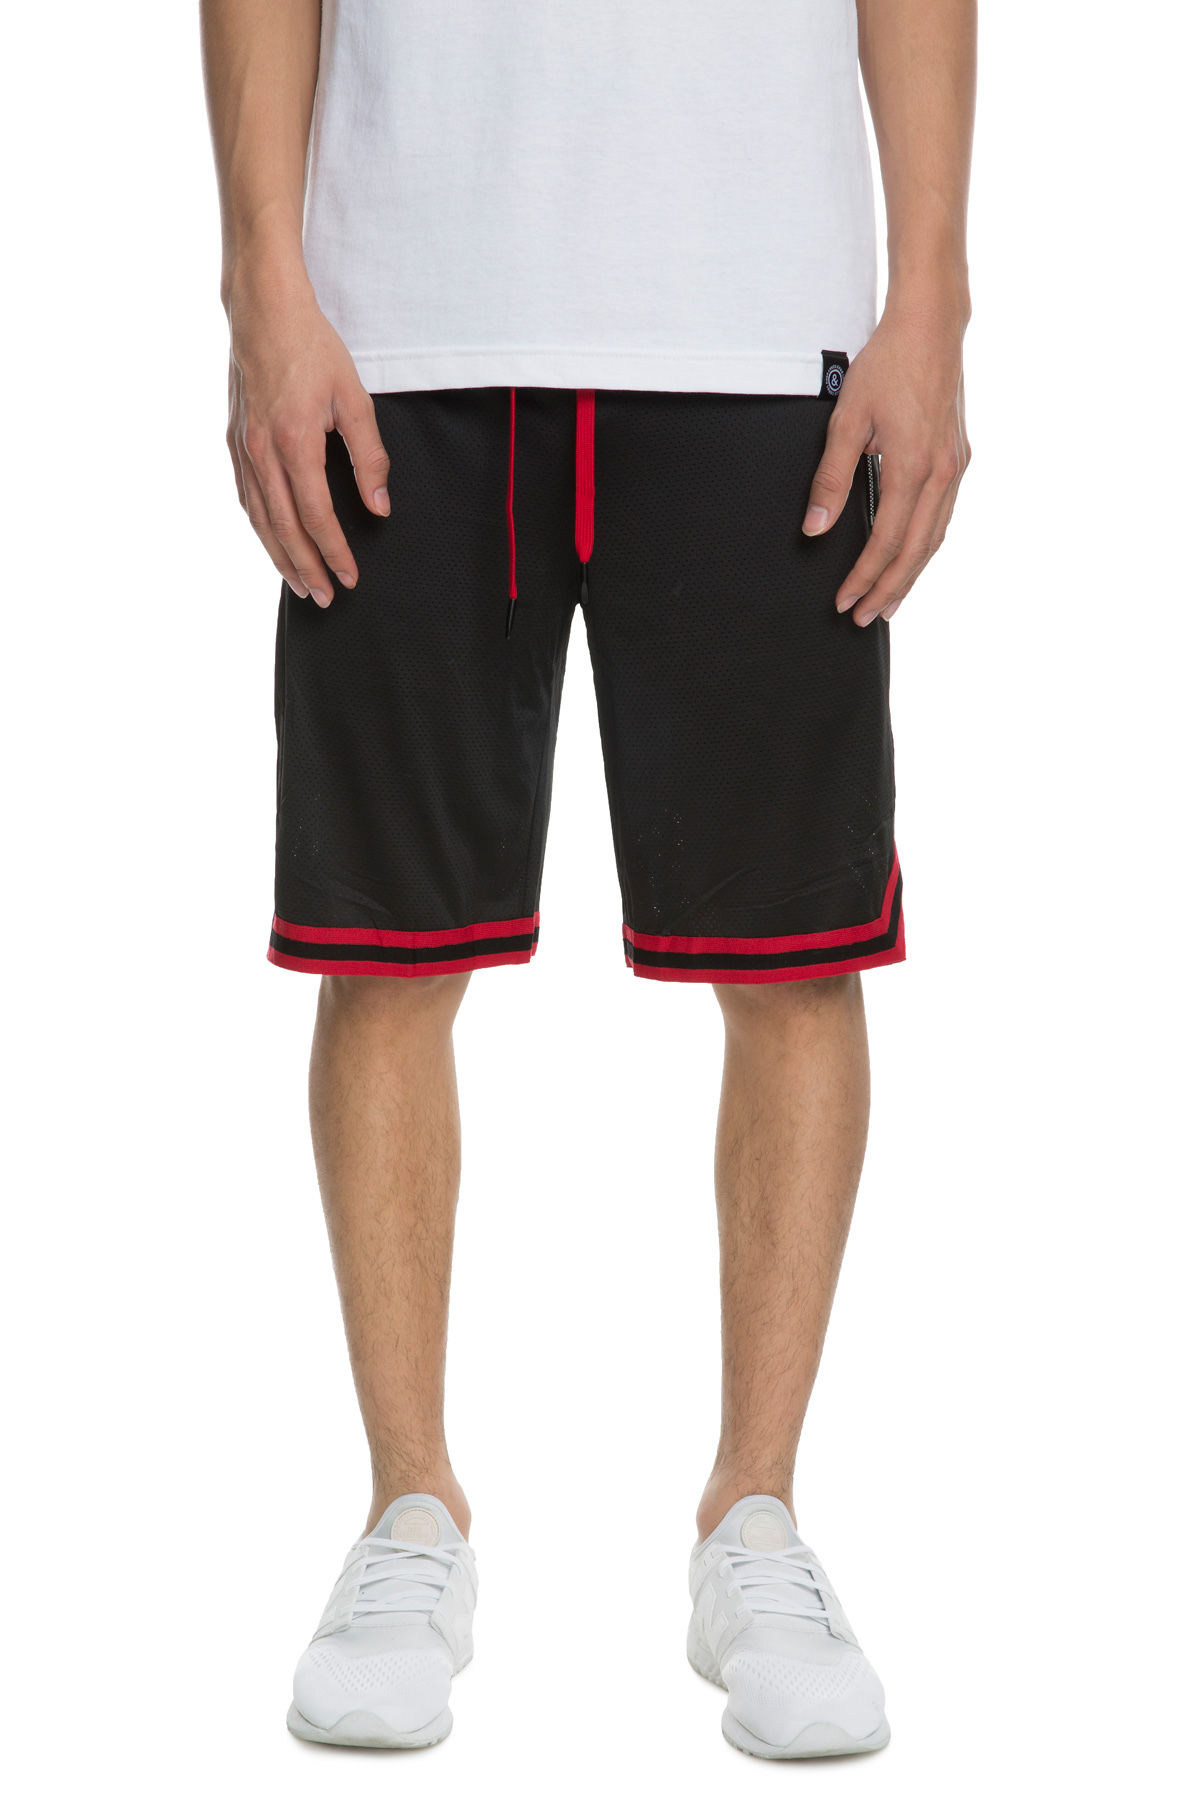 Image of Home Shorts in Black